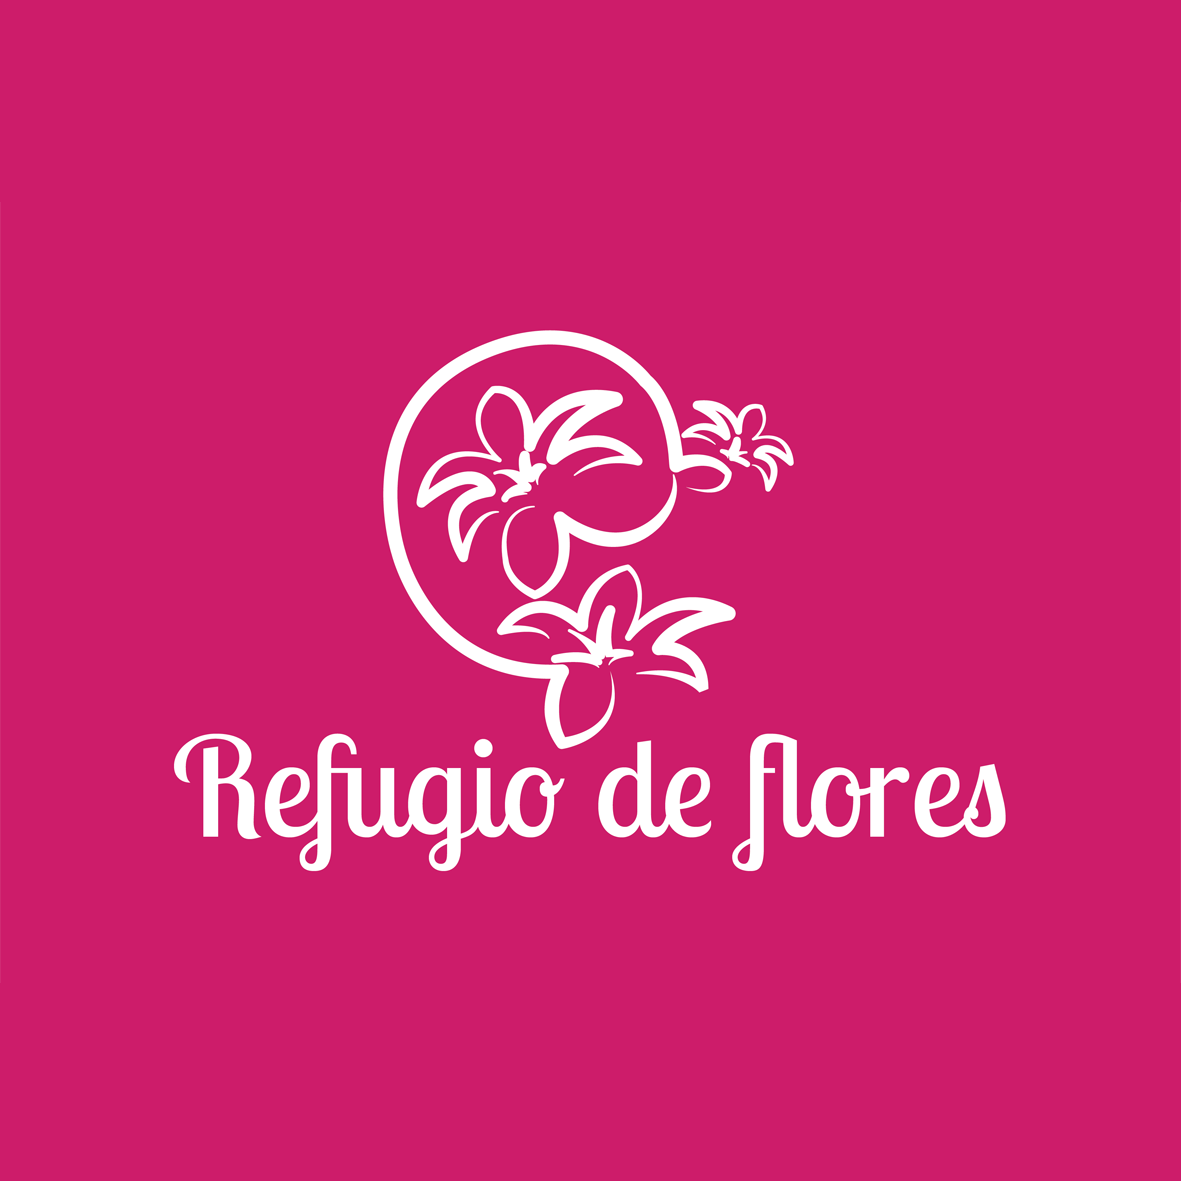 refurgiodeflores